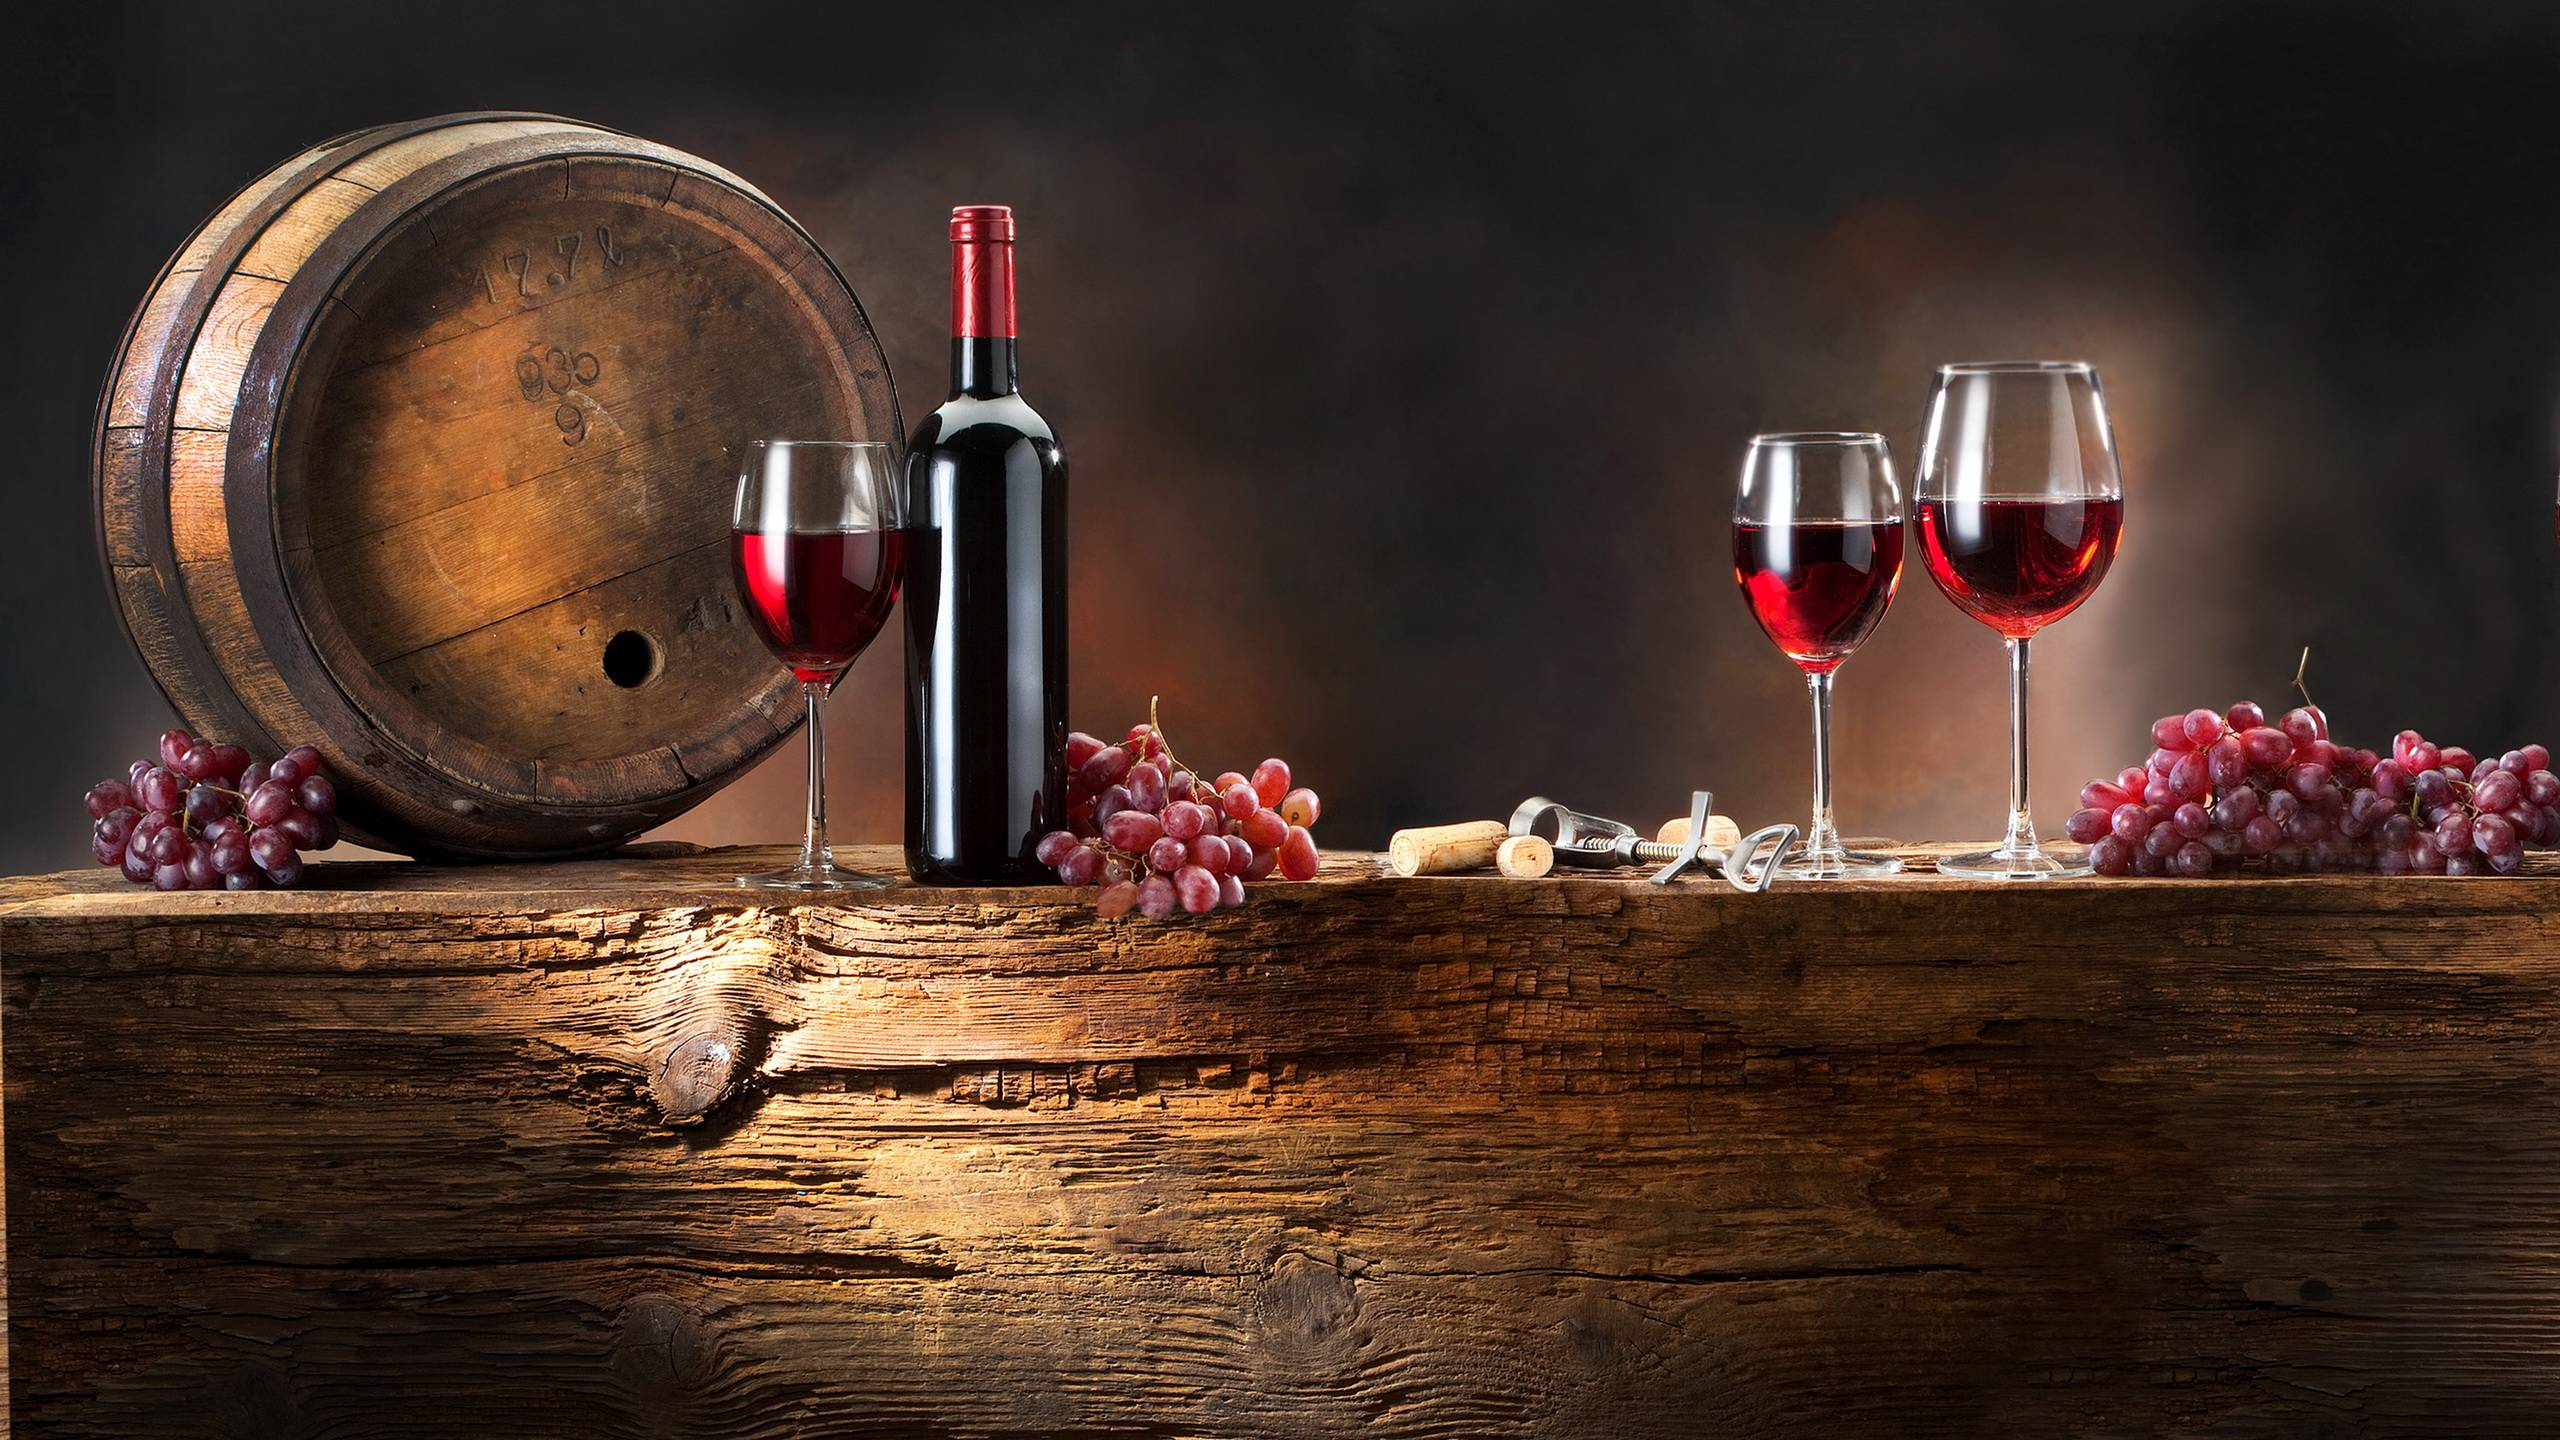 Free download Vino Wallpapers [2560x1440] for your Desktop, Mobile ...